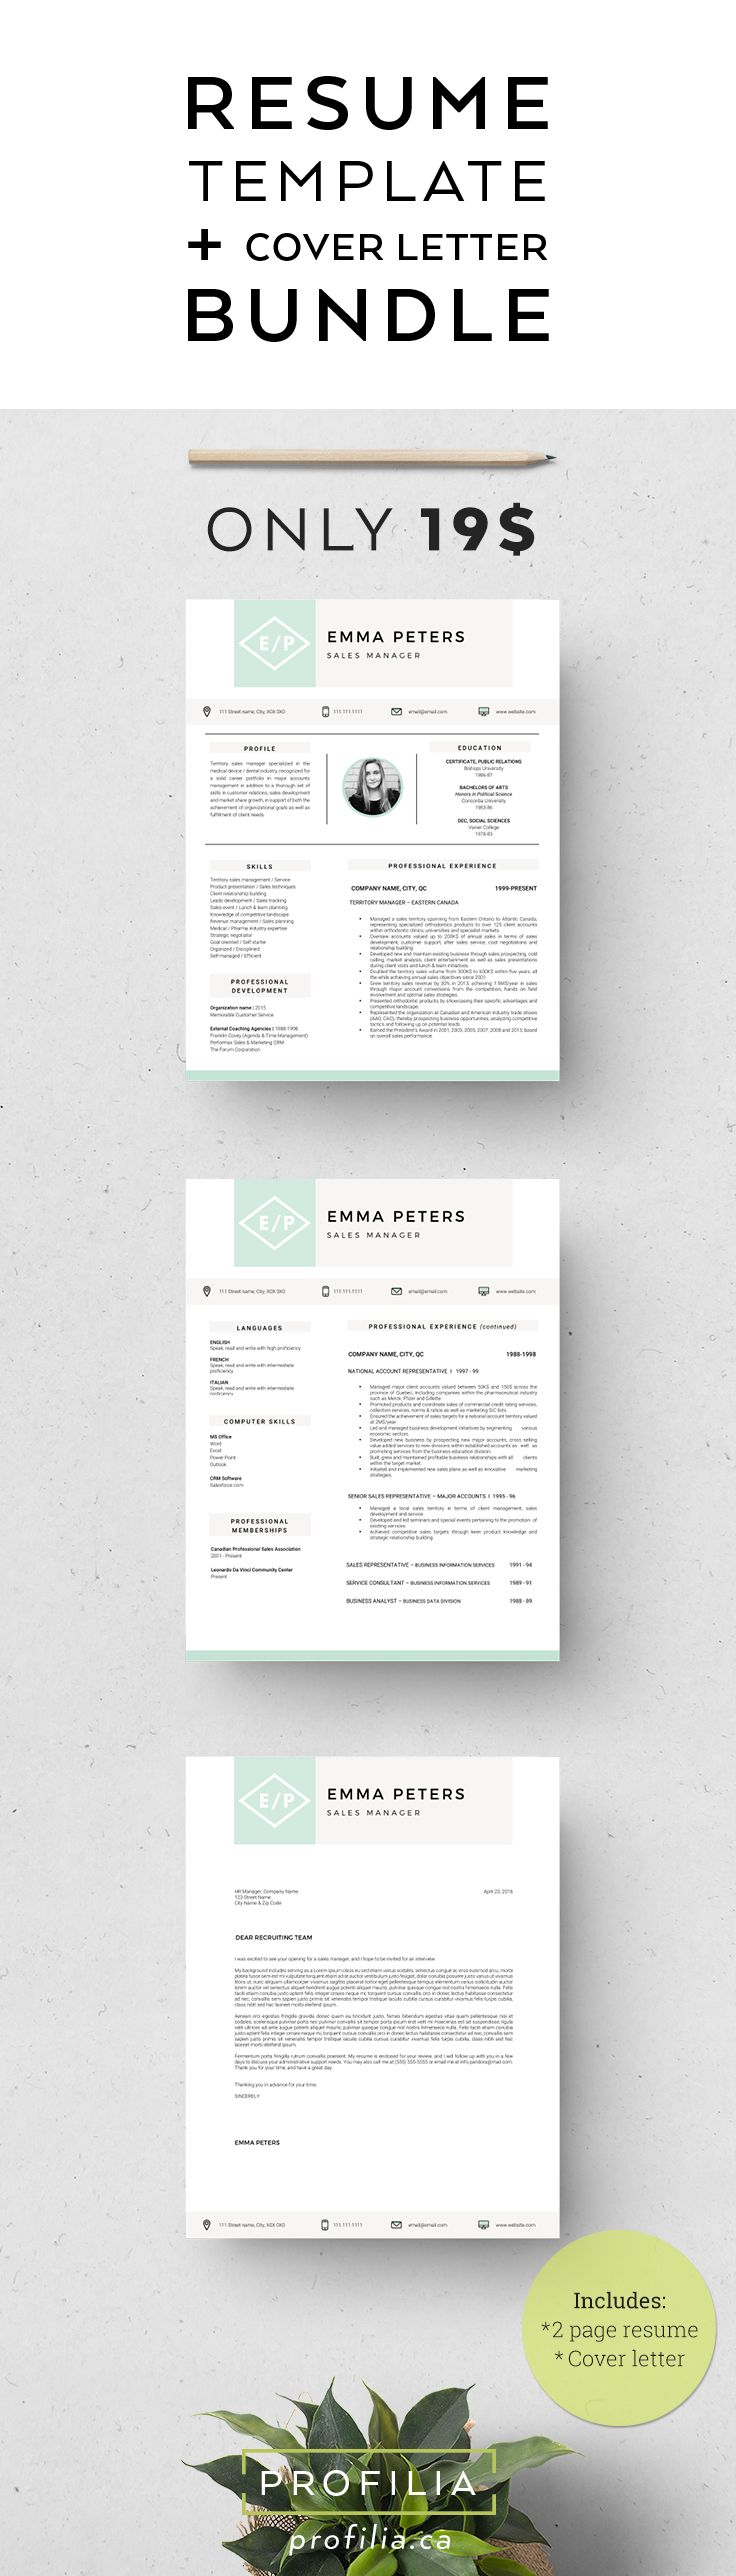 Best Resume Templates Many Free Images On   Resume